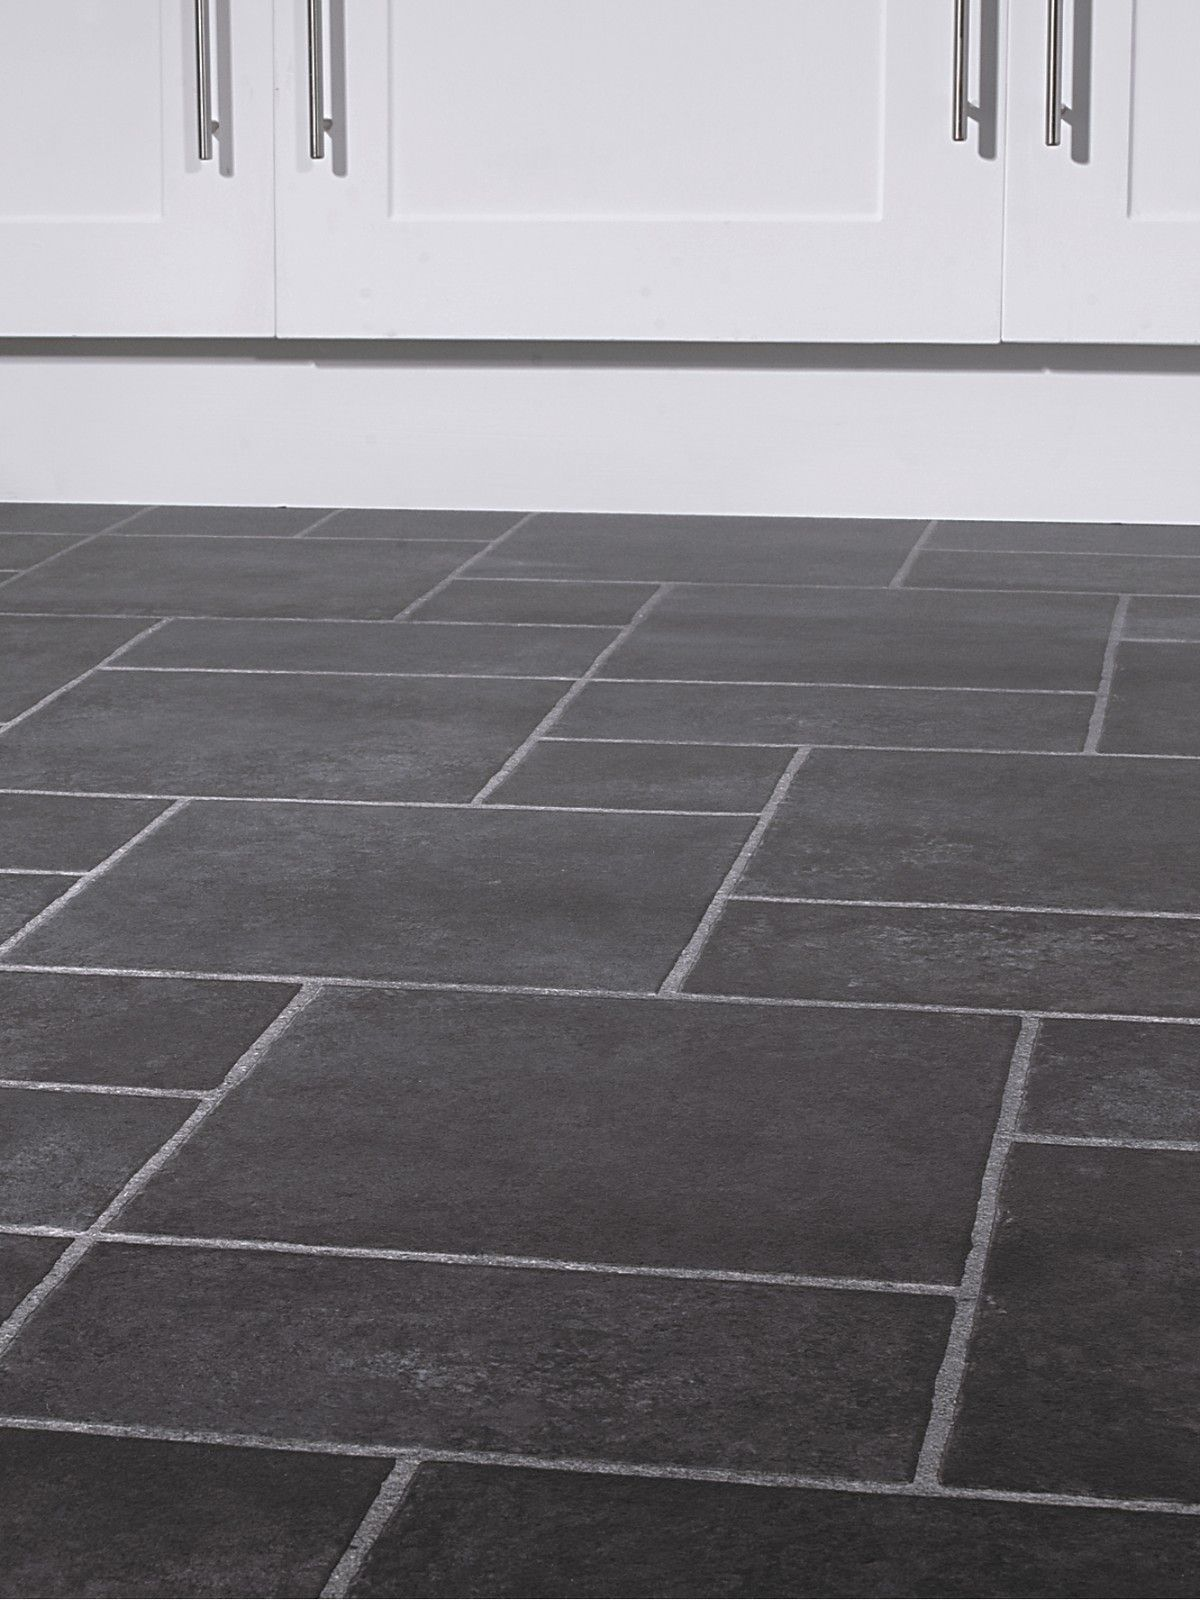 Slate Floor Tiles For Kitchen The Dark Slate Color And Different Size Tiles Is Very Cool